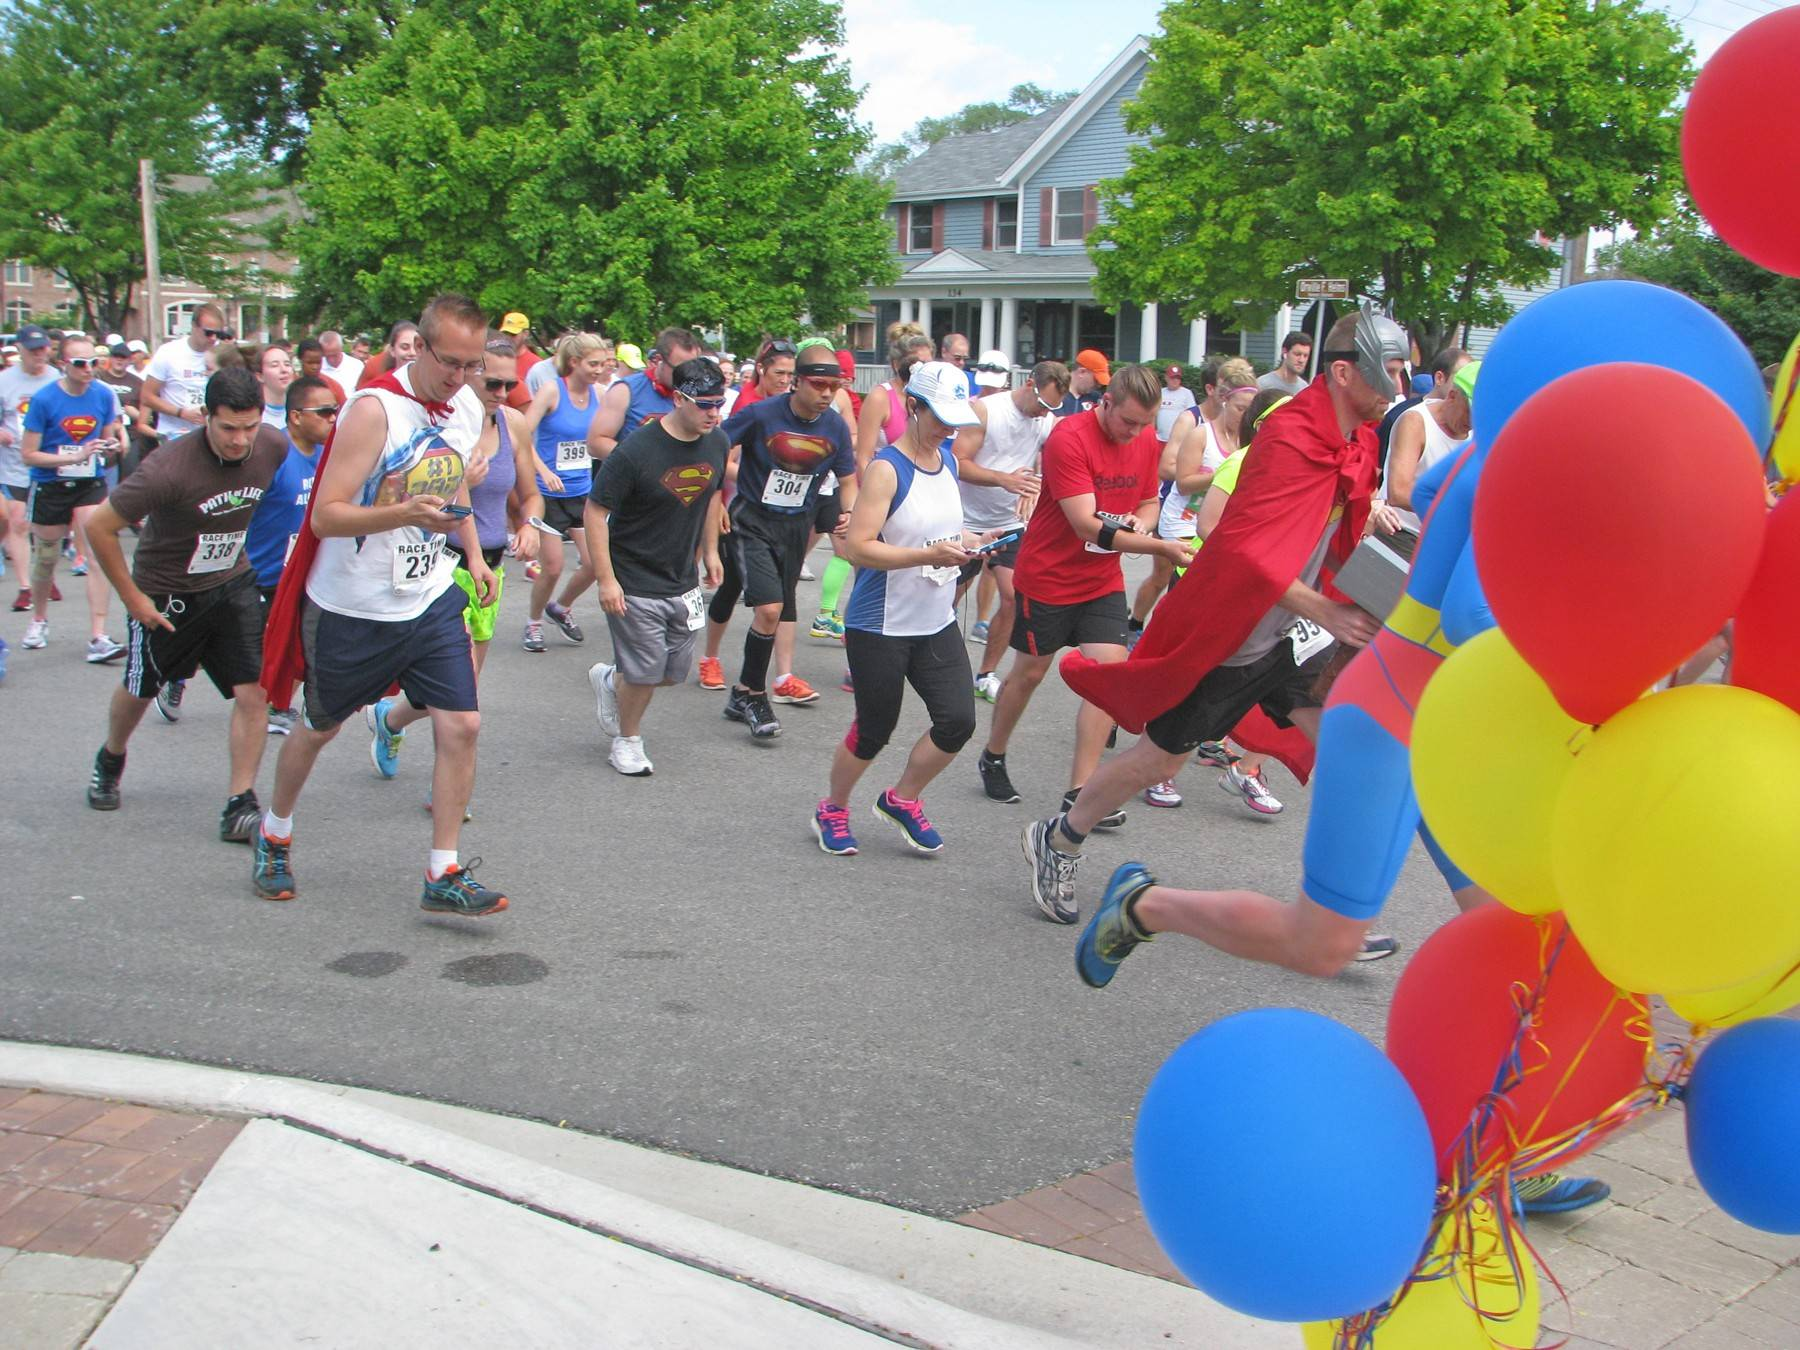 Superheroes of all kinds and ages run toward the goal of helping the area's homeless on Saturday, June 28, during JOURNEYS | The Road Home's 5K Superhero Race/1 Mile Super Stroll.